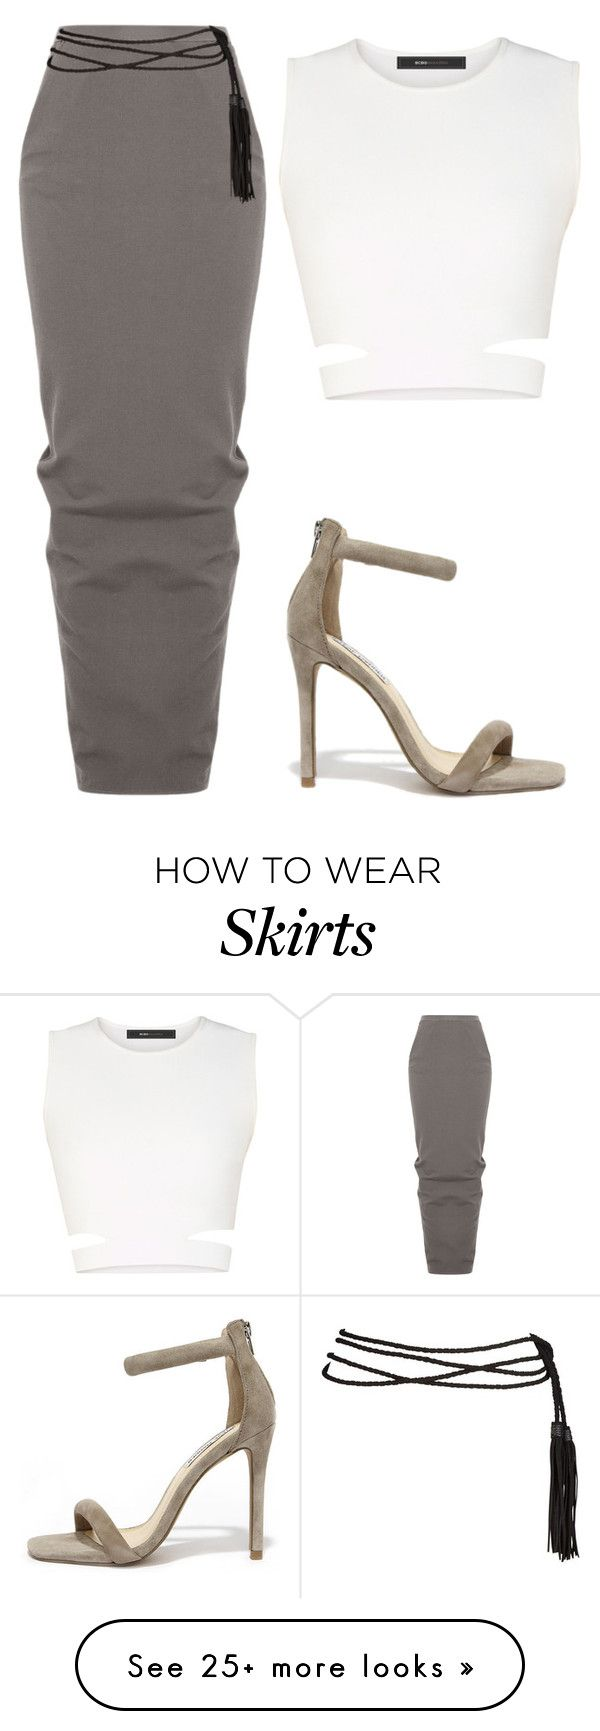 """Pencil maxi skirt x sandals x crop top x rope belt tide tight"" by le-lola on Polyvore featuring Rick Owens, BCBGMAXAZRIA, Steve Madden, women's clothing, women's fashion, women, female, woman, misses and juniors"